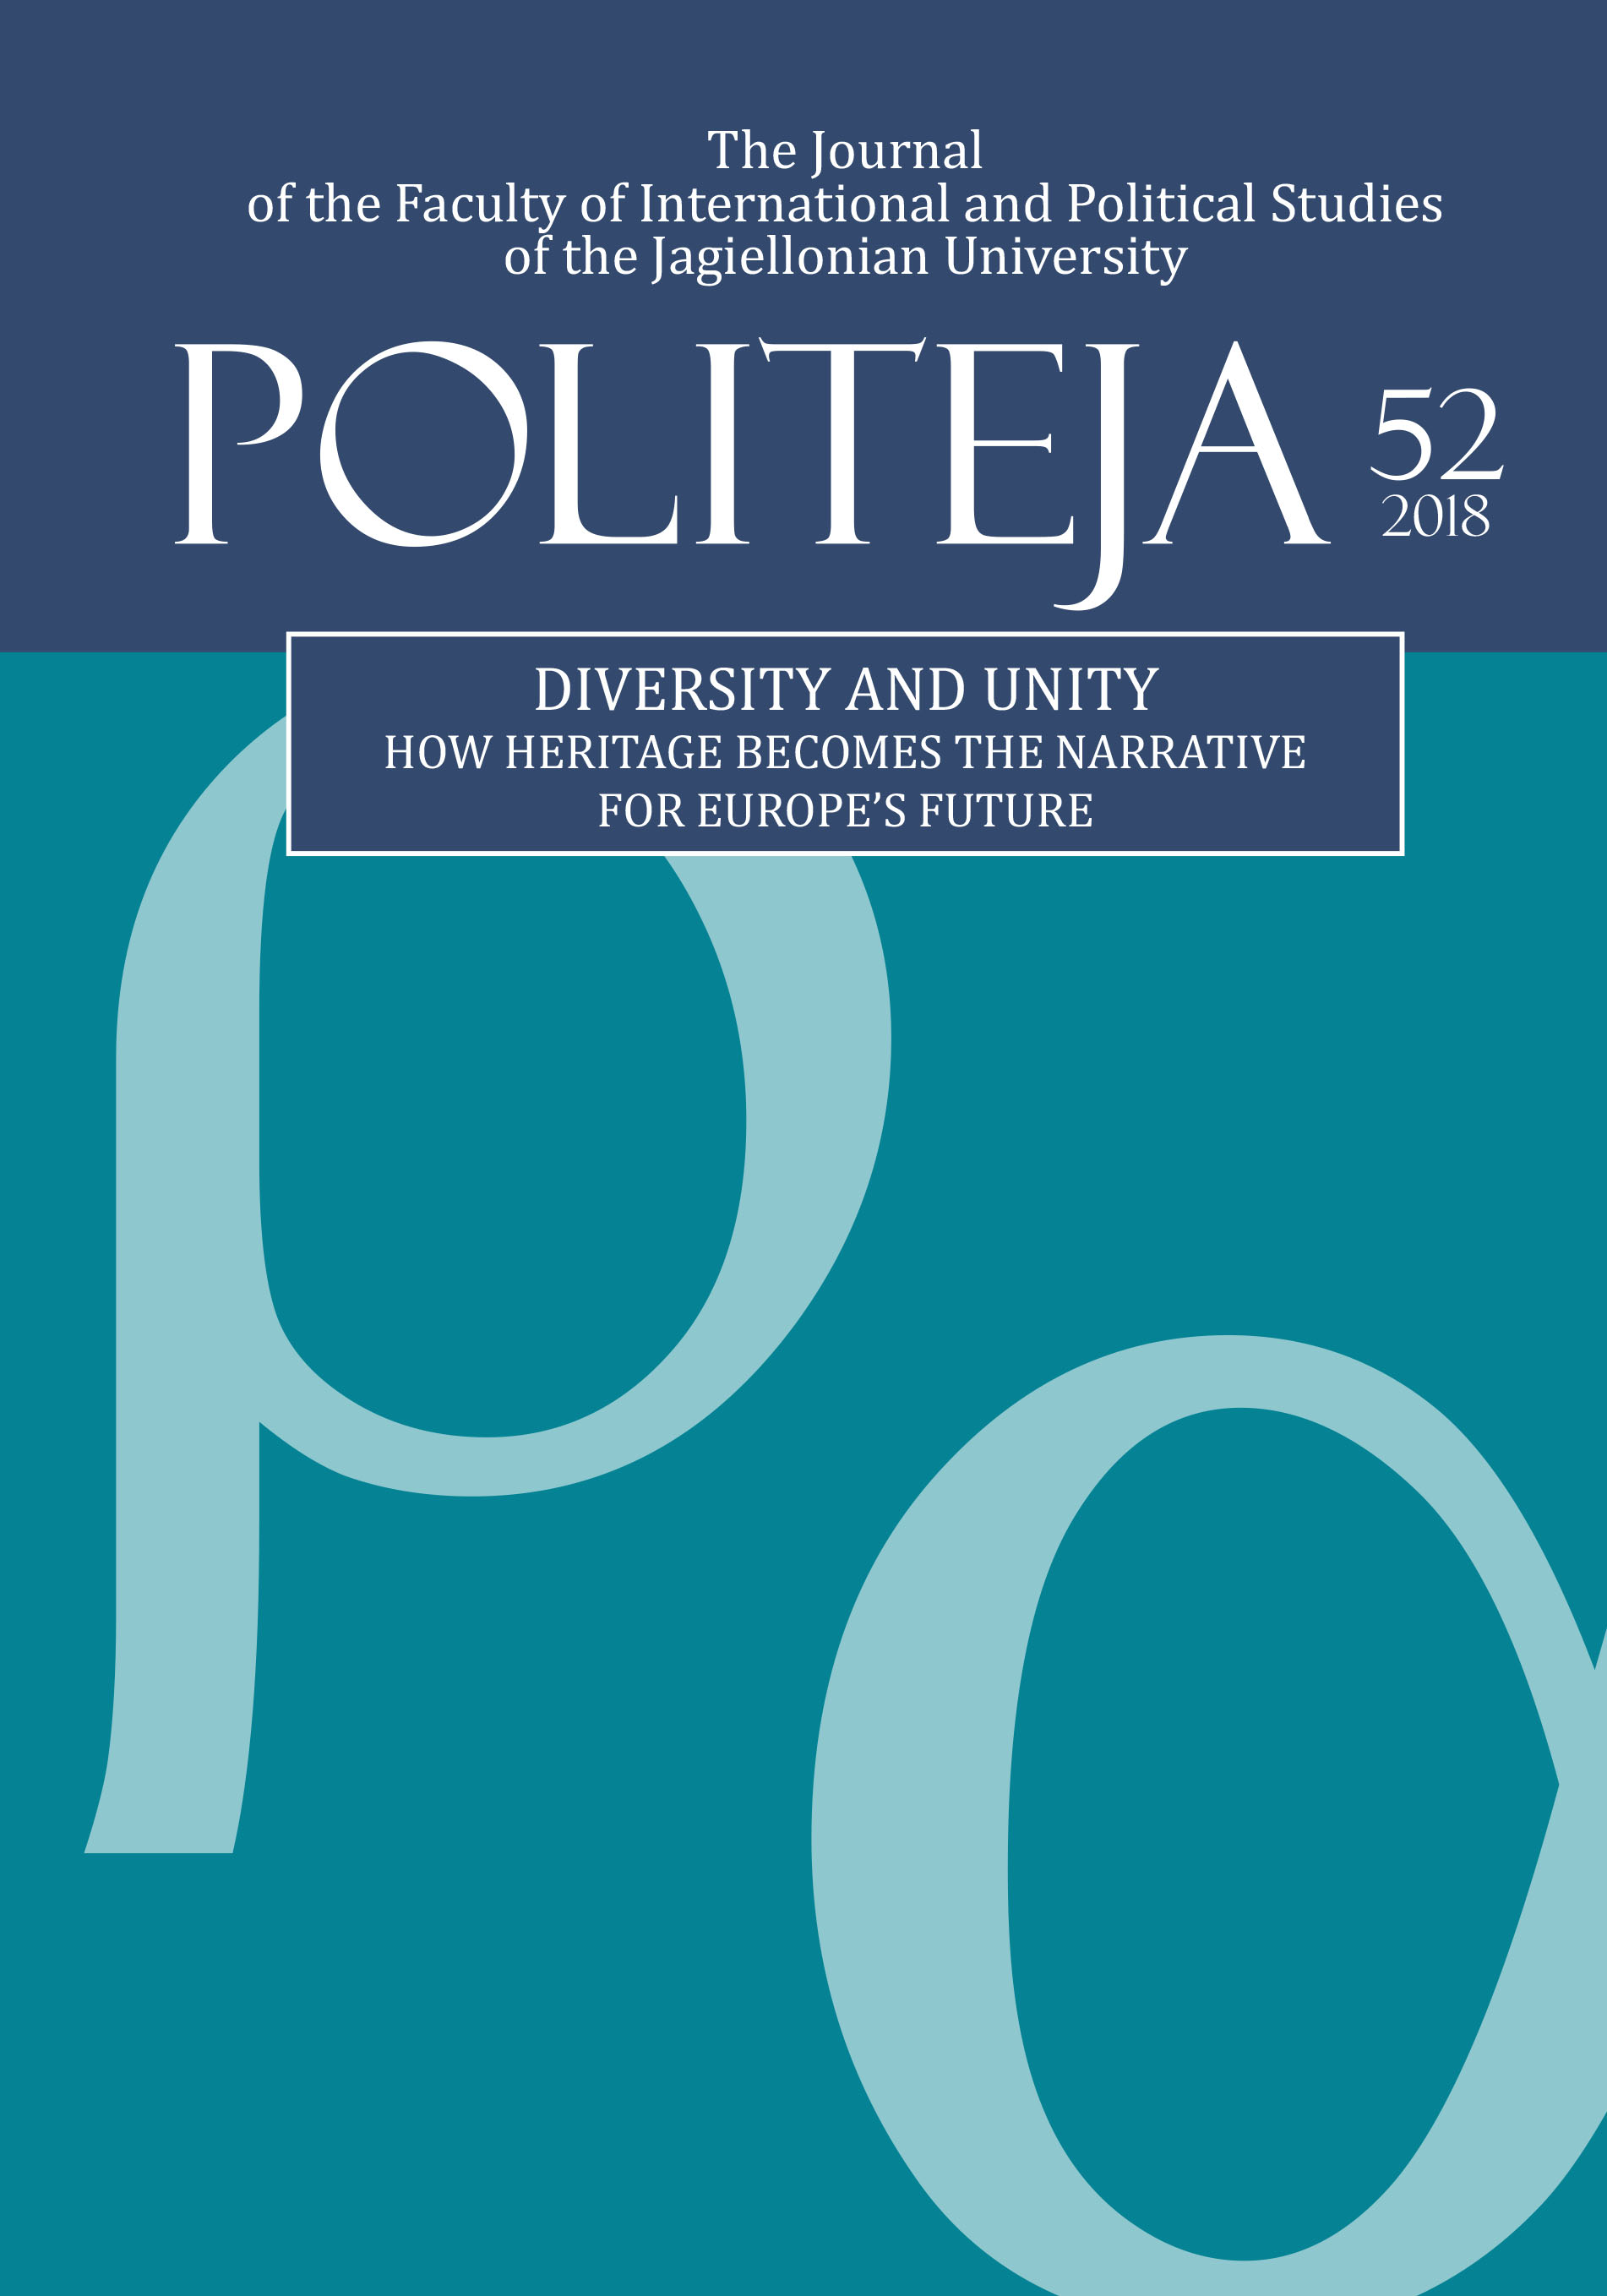 View Vol. 15 No. 1(52) (2018): Diversity and Unity. How Heritage Becomes the Narrative for Europe's Future